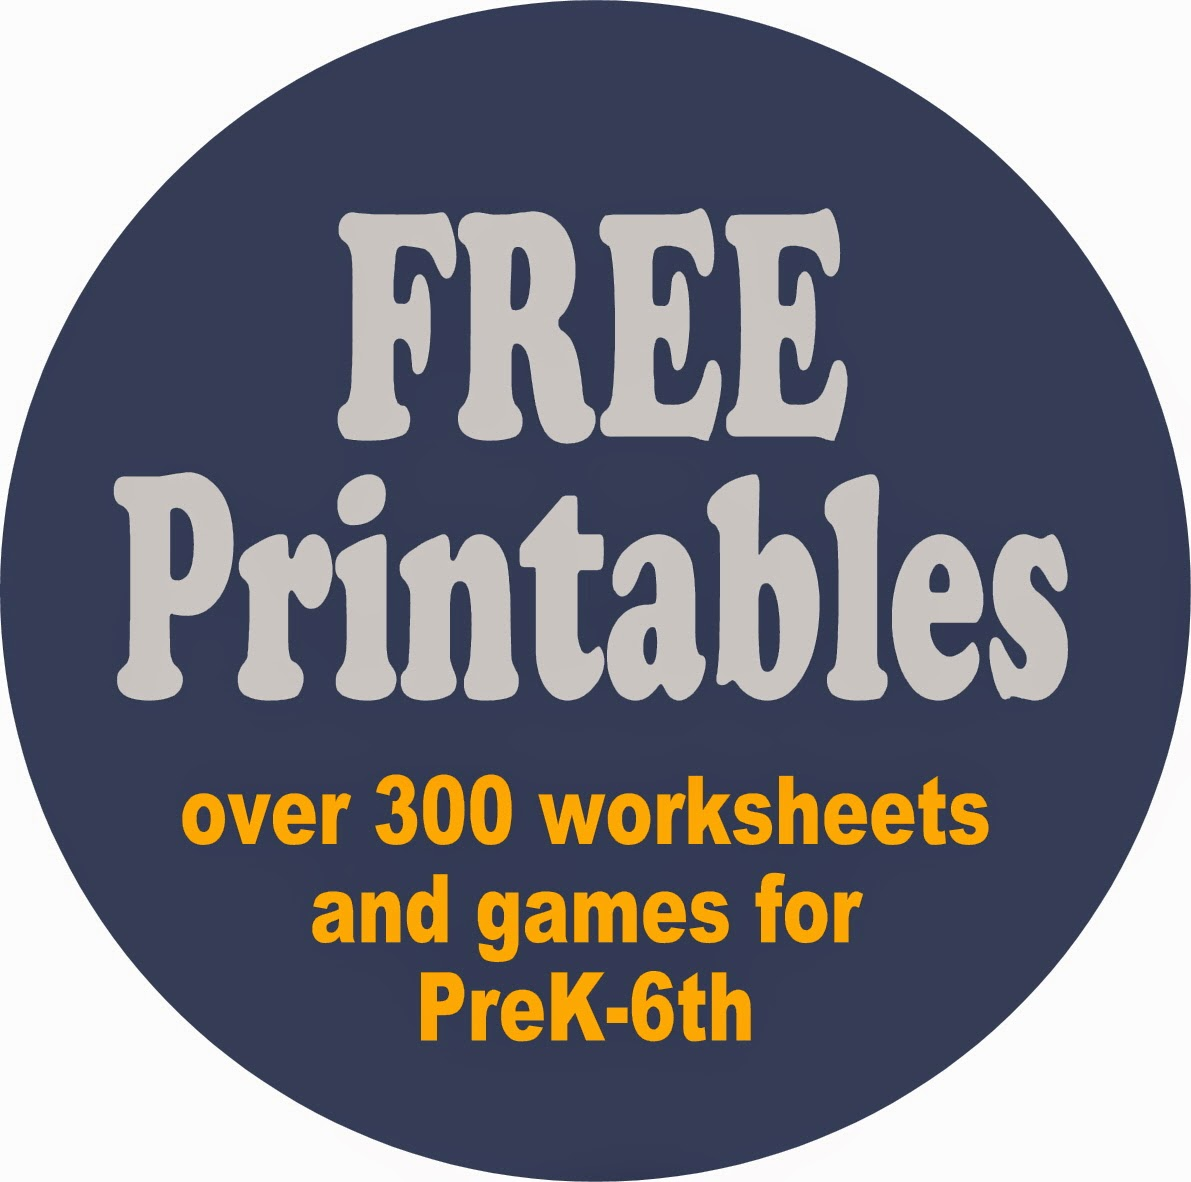 Worksheets 6th Grade Homeschool Worksheets 123 homeschool 4 me worksheets for kids over 300 games lapbooks and units kids